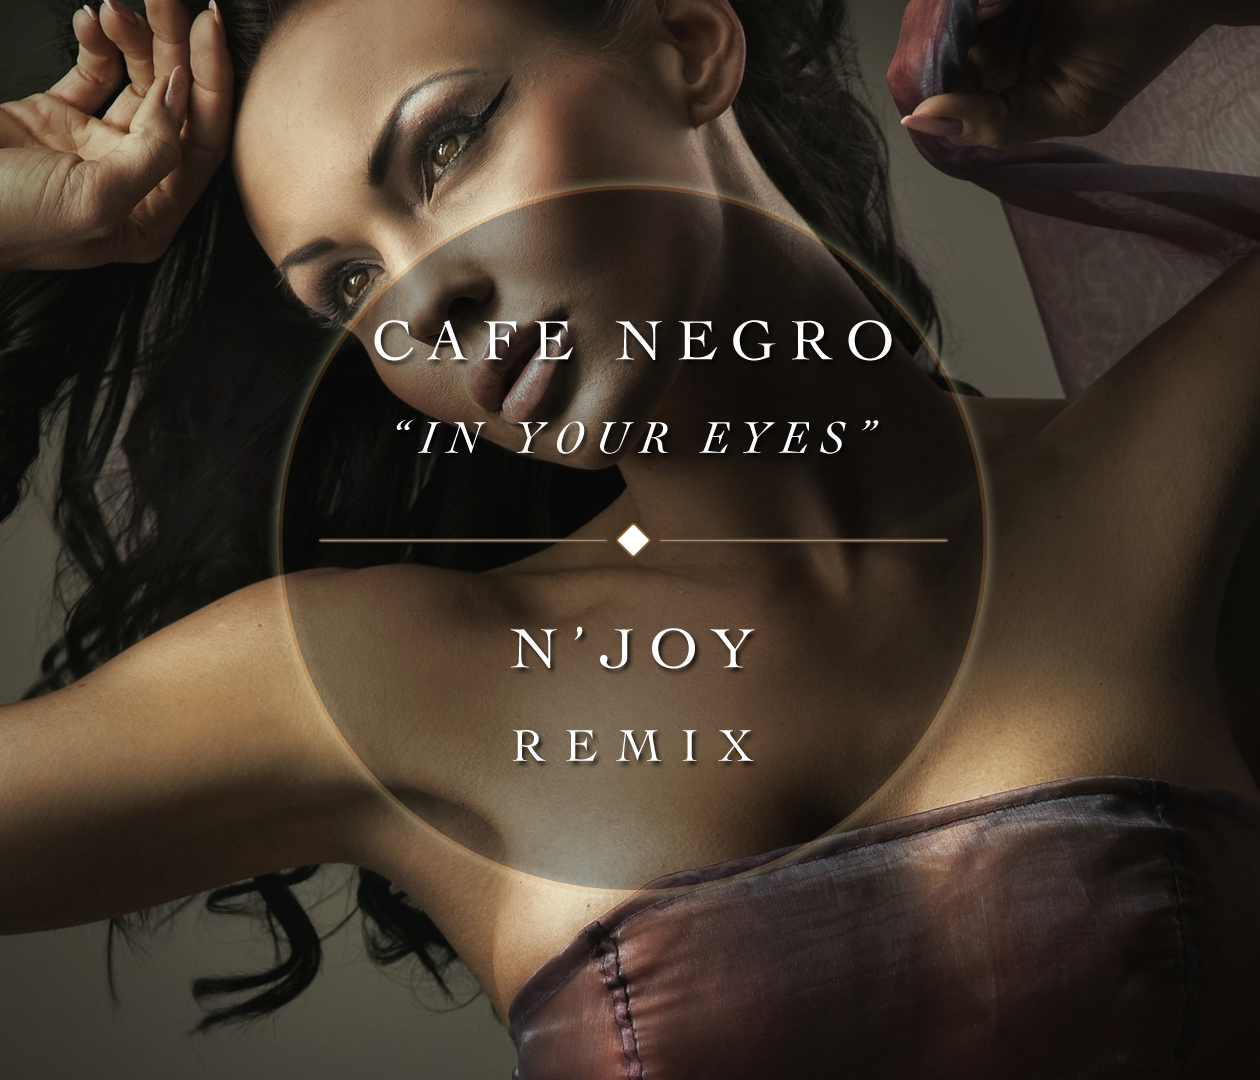 Cafe Negro - In Your Eyes (N\'Joy Remix) [PREVIEW]